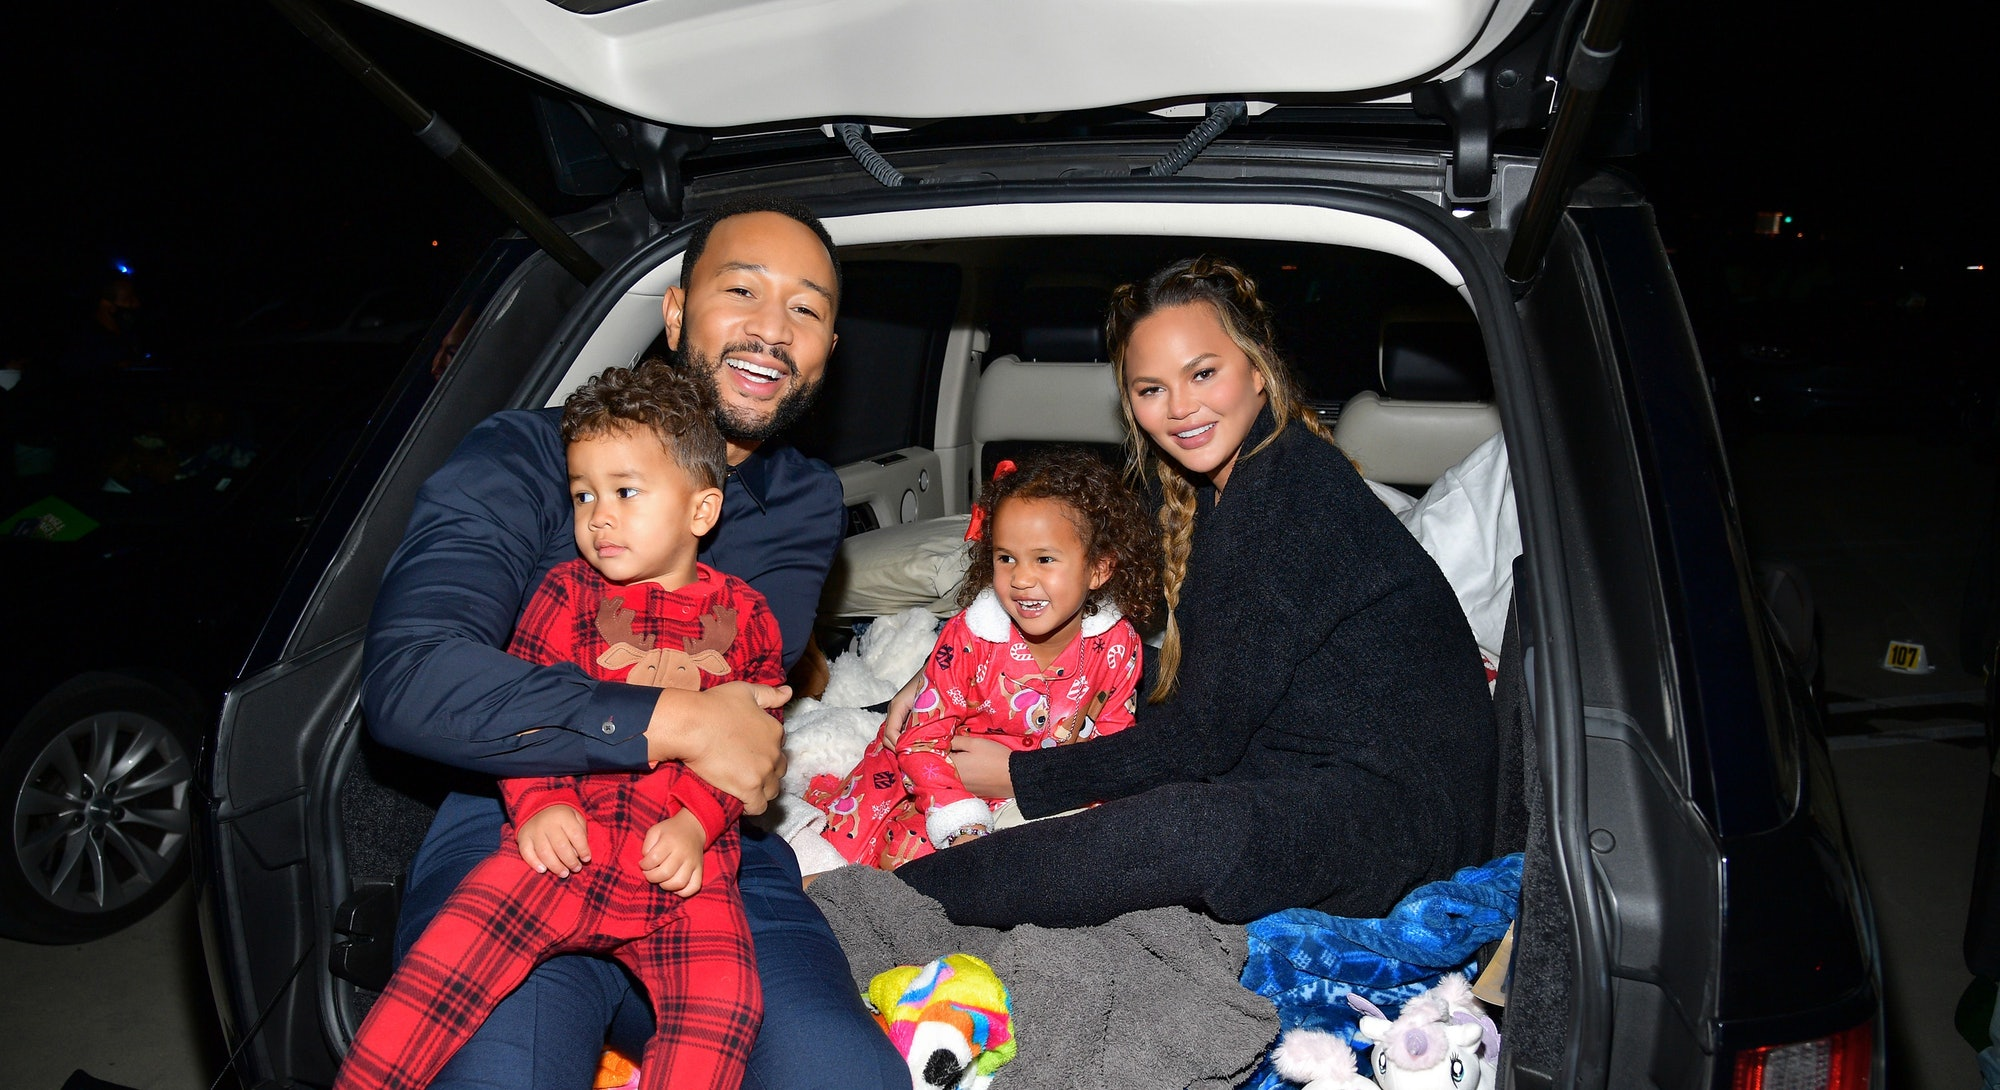 """LOS ANGELES, CALIFORNIA - NOVEMBER 13: (EDITORS NOTE: This image has been retouched) (L-R) Miles Theodore Stephens, John Legend, Luna Simone Stephens, and Chrissy Teigen attend Netflix's """"Jingle Jangle: A Christmas Journey"""" drive-in premiere at The Grove on November 13, 2020 in Los Angeles, California. (Photo by Matt Winkelmeyer/Getty Images for Netflix)"""